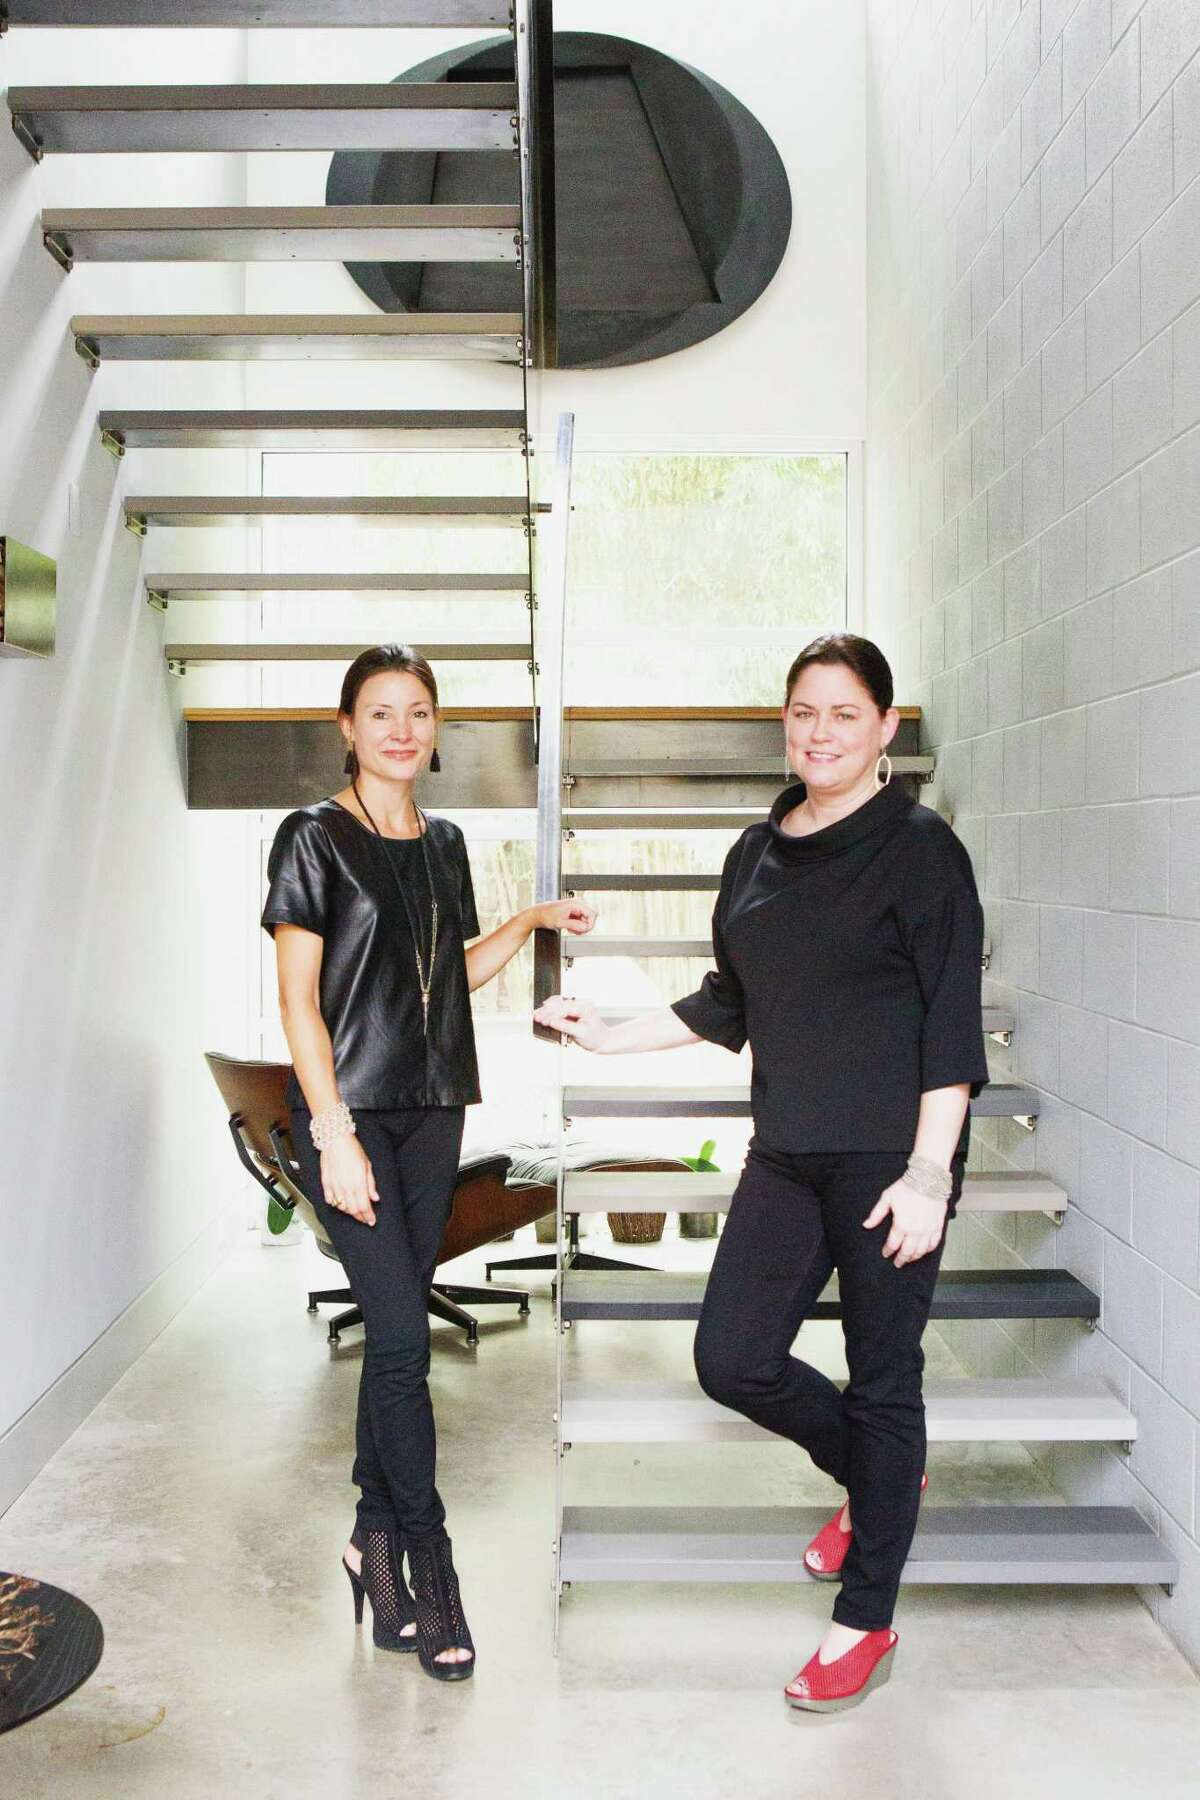 Courtney Blair, left, and Lindsay Robinson and of Tokerud+Co Interior Design.